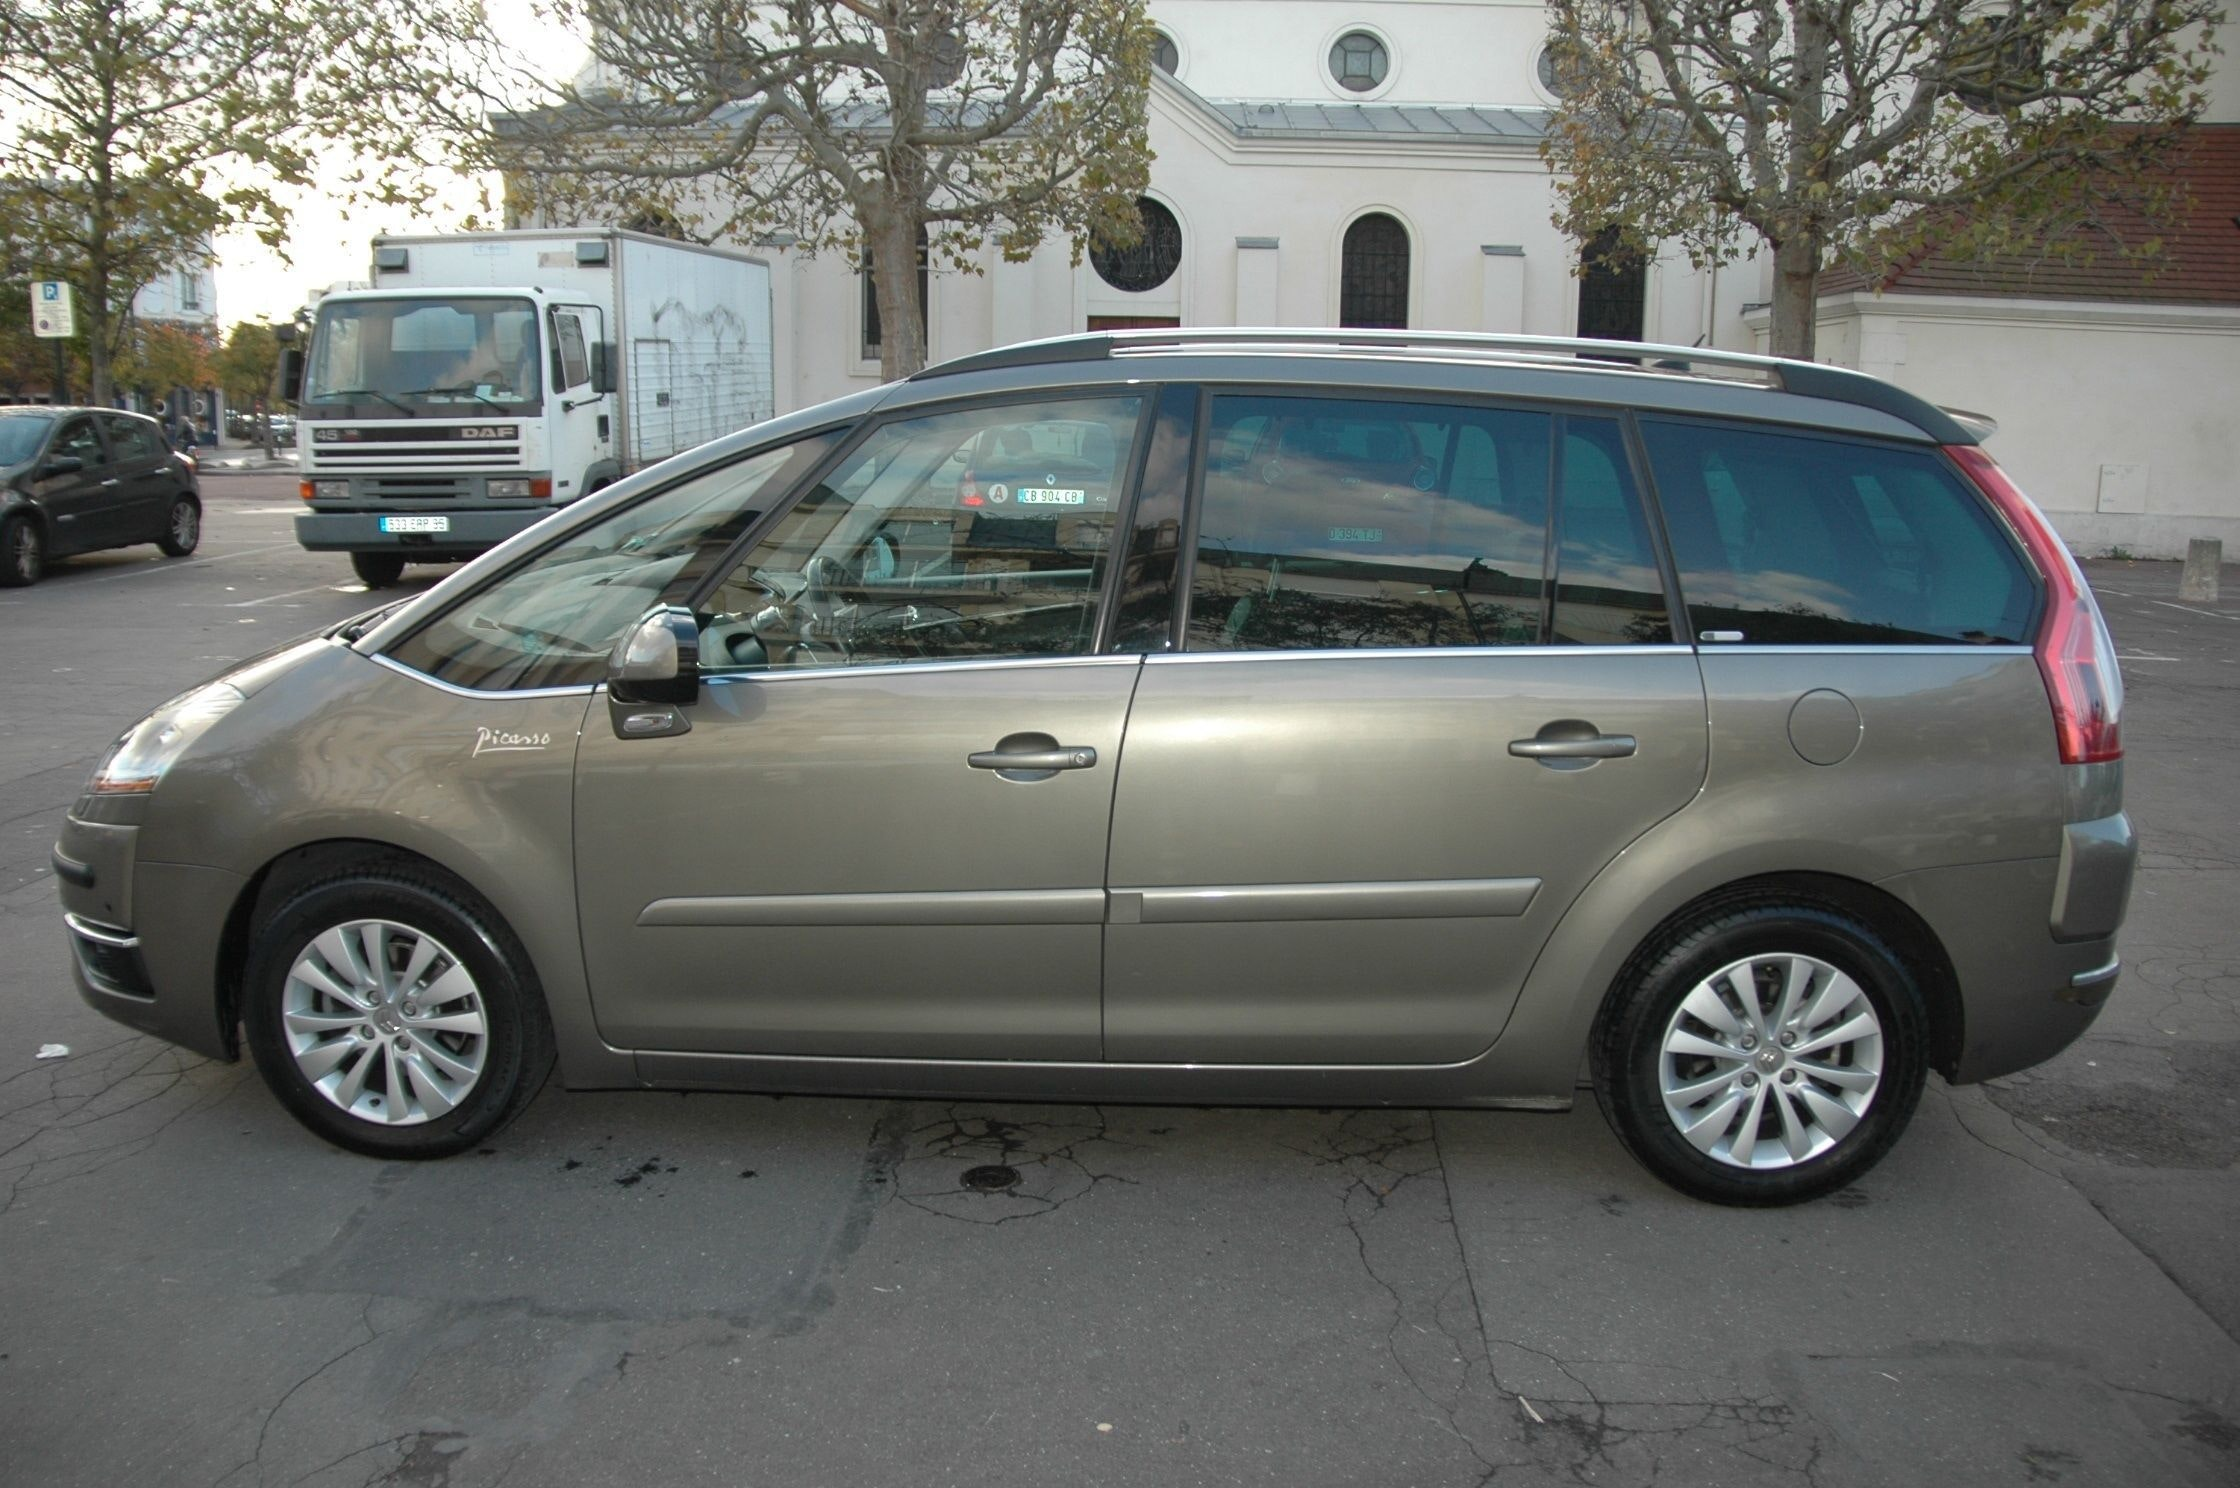 Citroen Grand C4 Picasso EXCLUSIVE 110ch Cuir ttes options, 2007, Diesel, automatique, 7 places